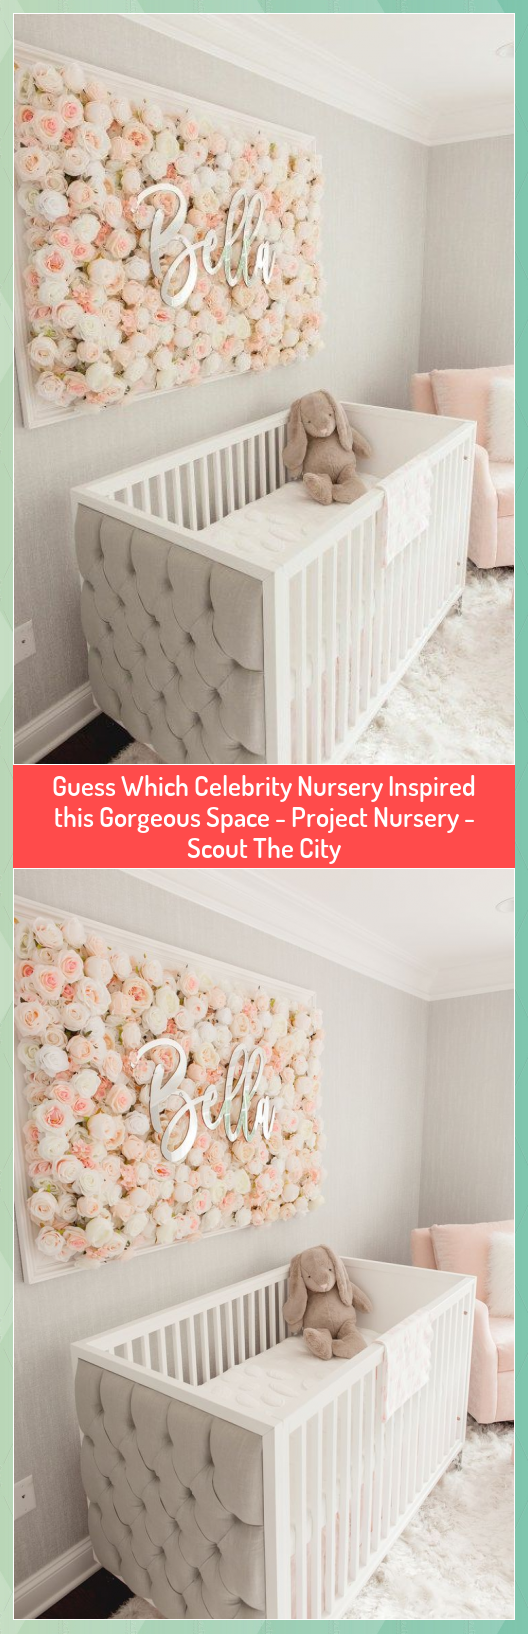 Guess Which Celebrity Nursery Inspired this Gorgeous Space  Project Nursery  Scout The City